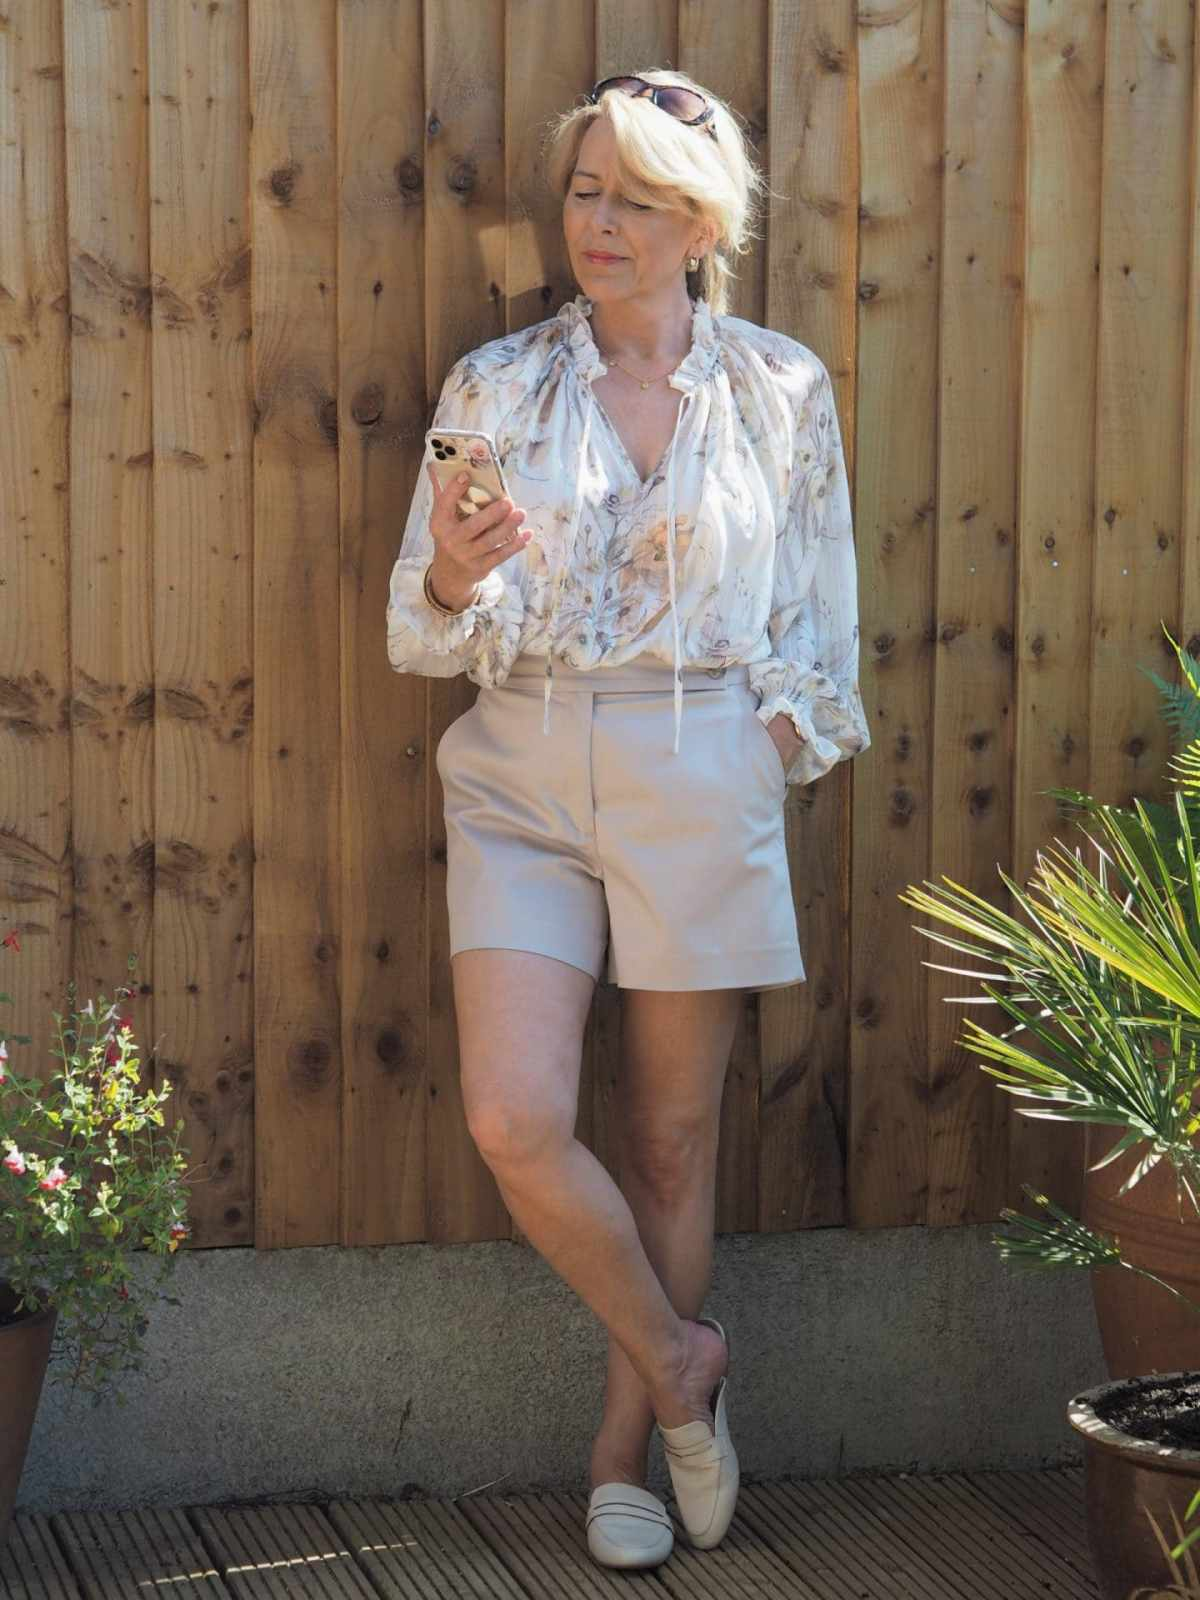 Readers' fav Laura in shorts, slides and floral blouse